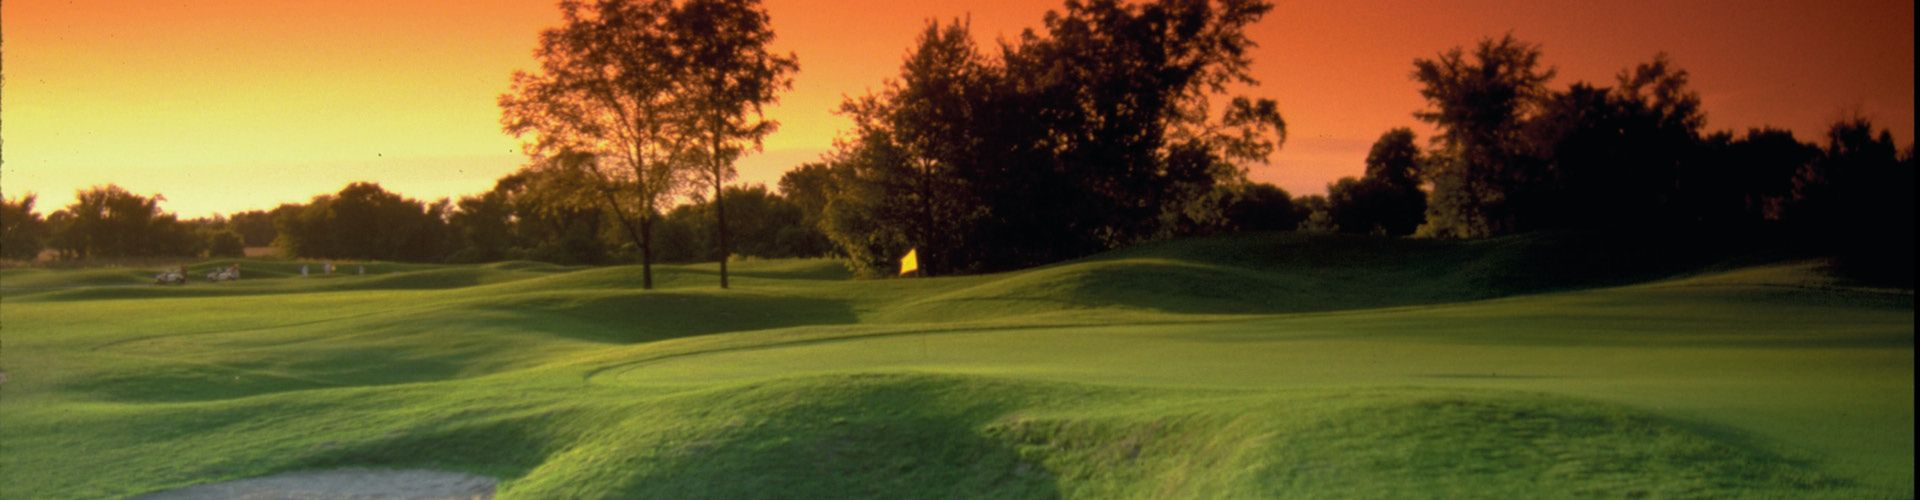 golden fox plymouth michigan golf course information and reviews. Black Bedroom Furniture Sets. Home Design Ideas